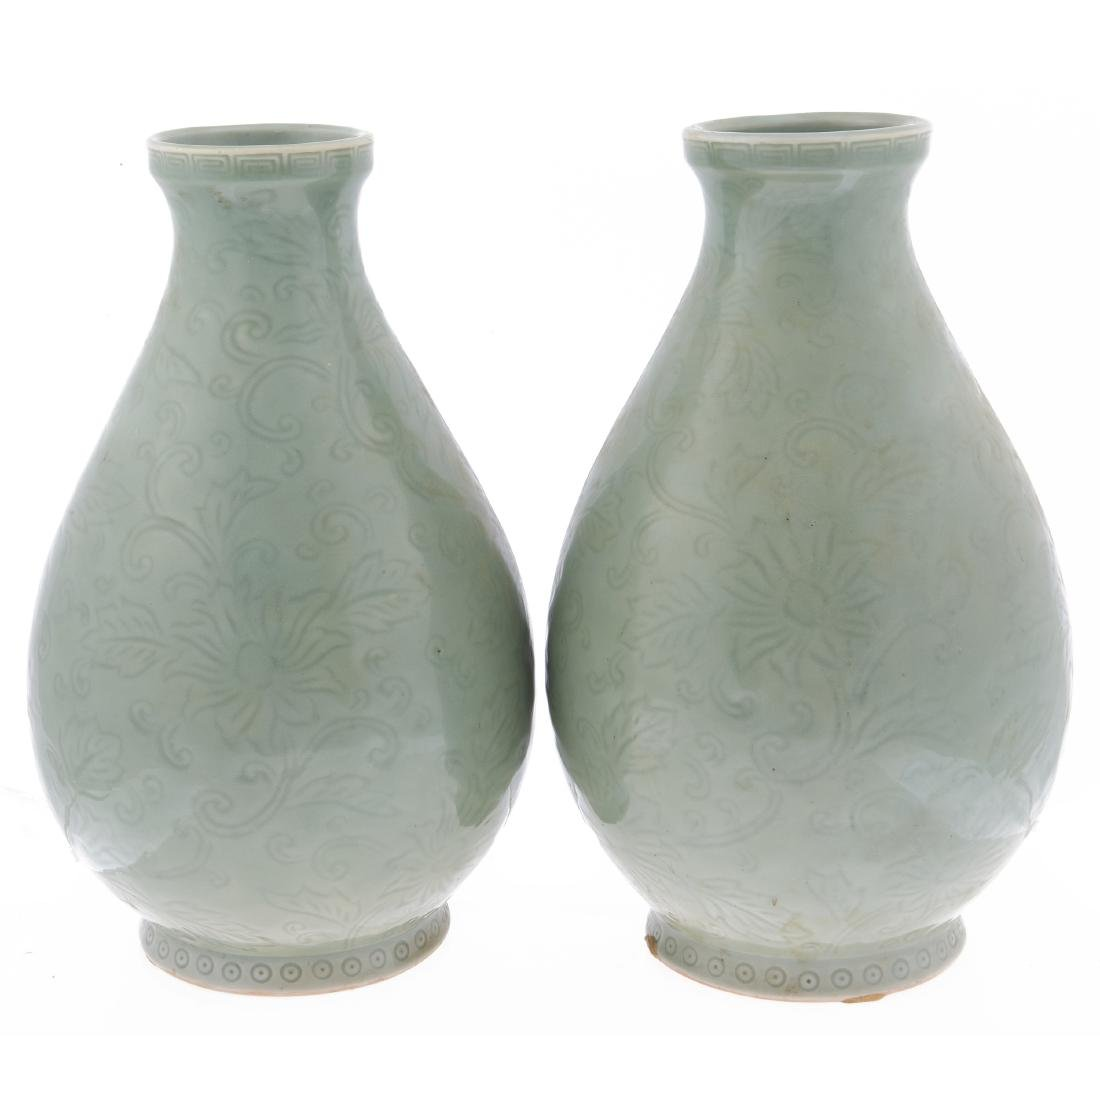 A pair of Chinese celadon glazed vases